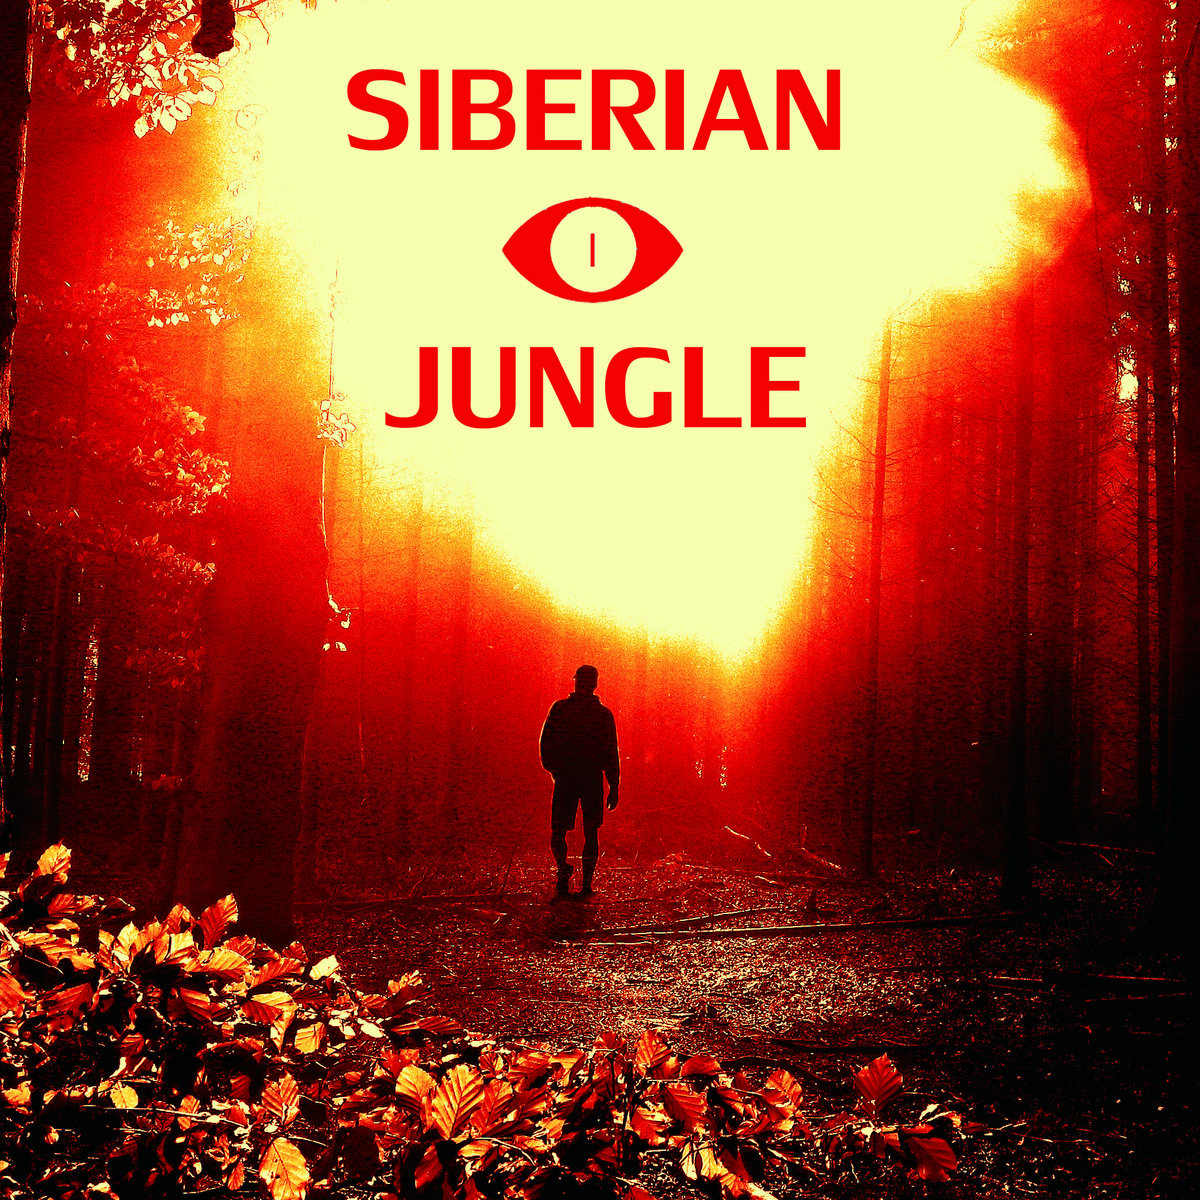 Siberian Jungle - Volume 1 @ 'Siberian Jungle - Volume 1' album (atmospheric drum'n'bass, electronic)